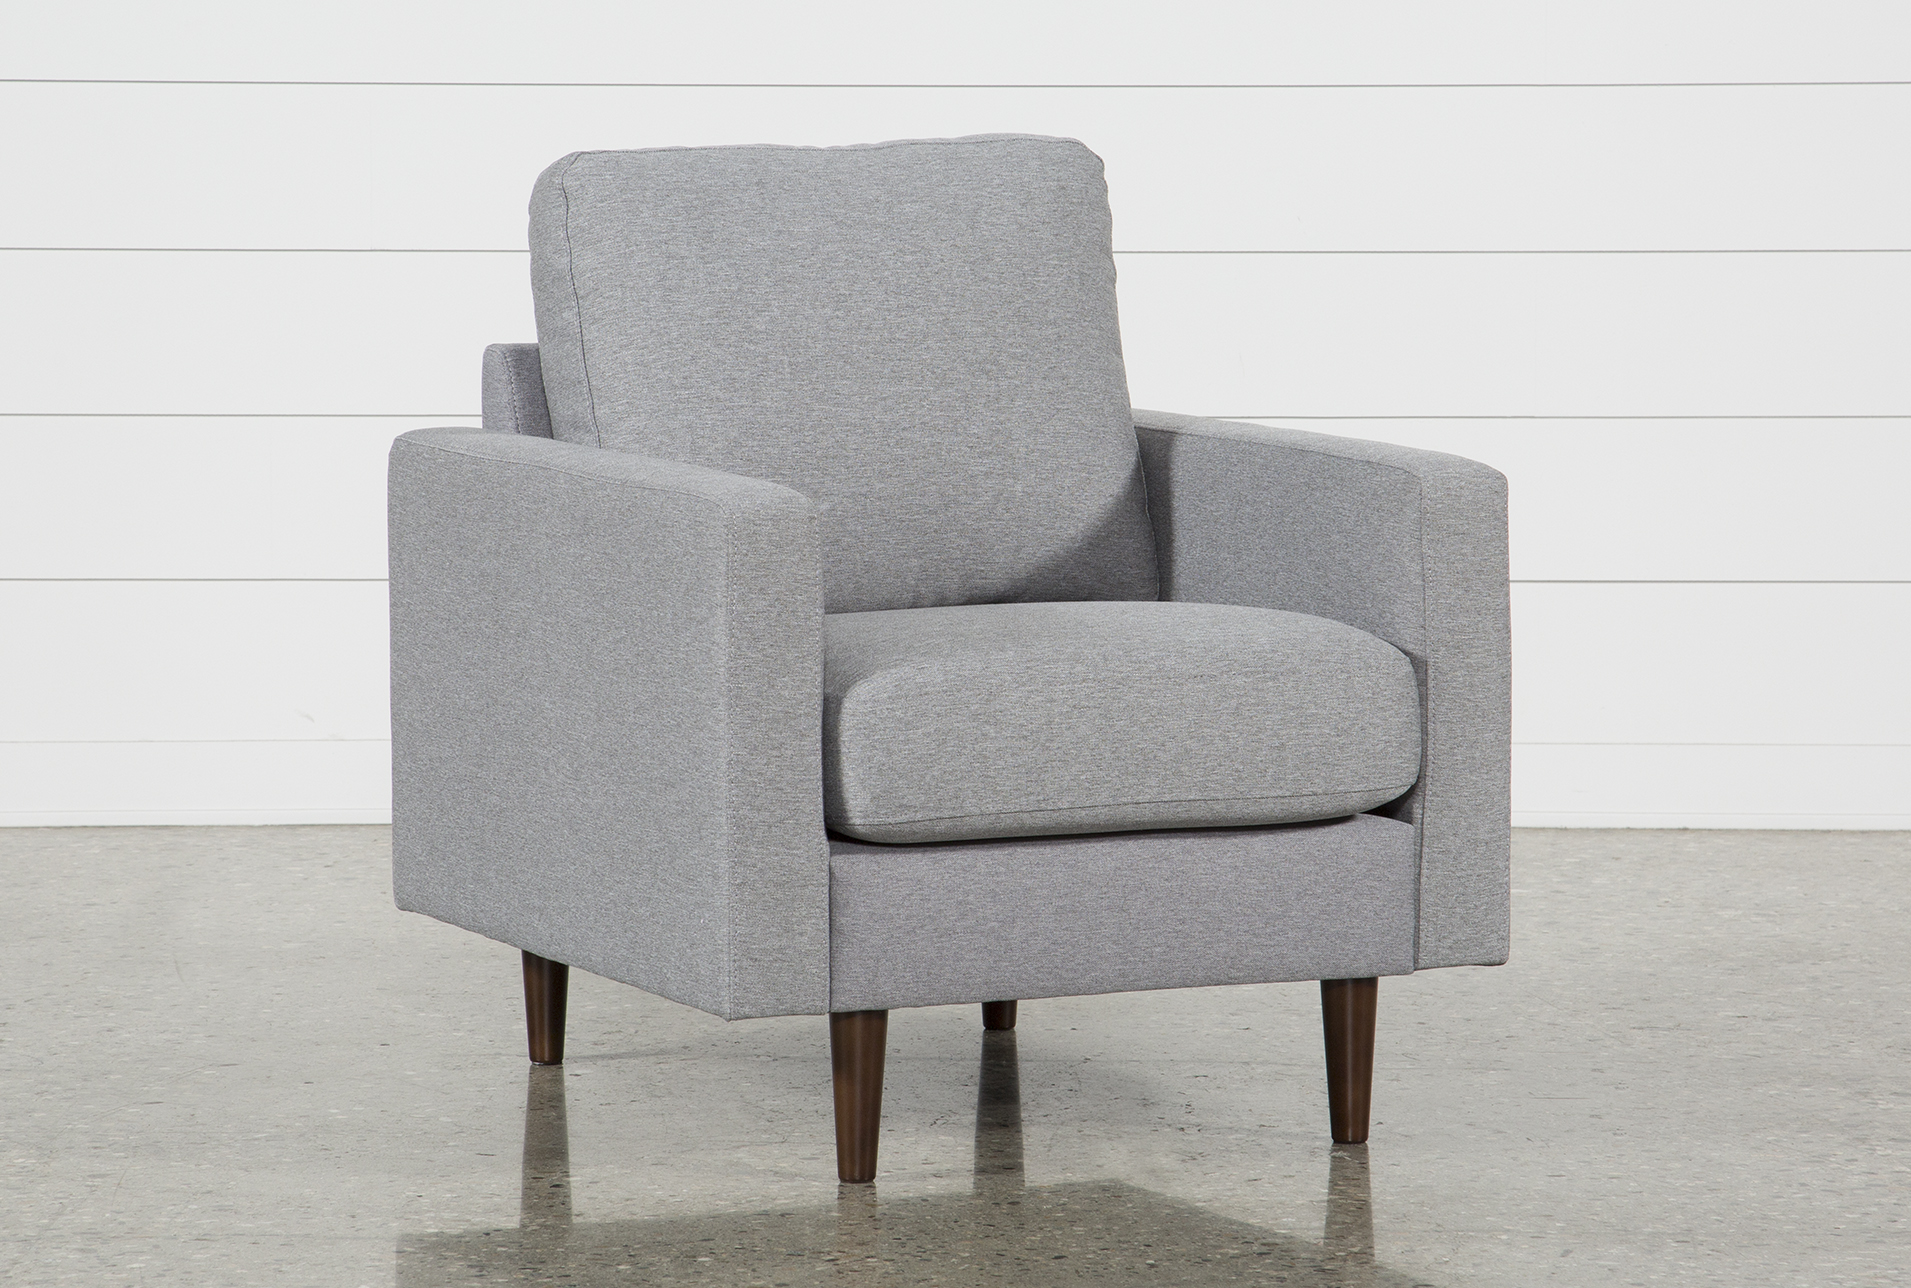 David Grey Chair (Qty: 1) Has Been Successfully Added To Your Cart.